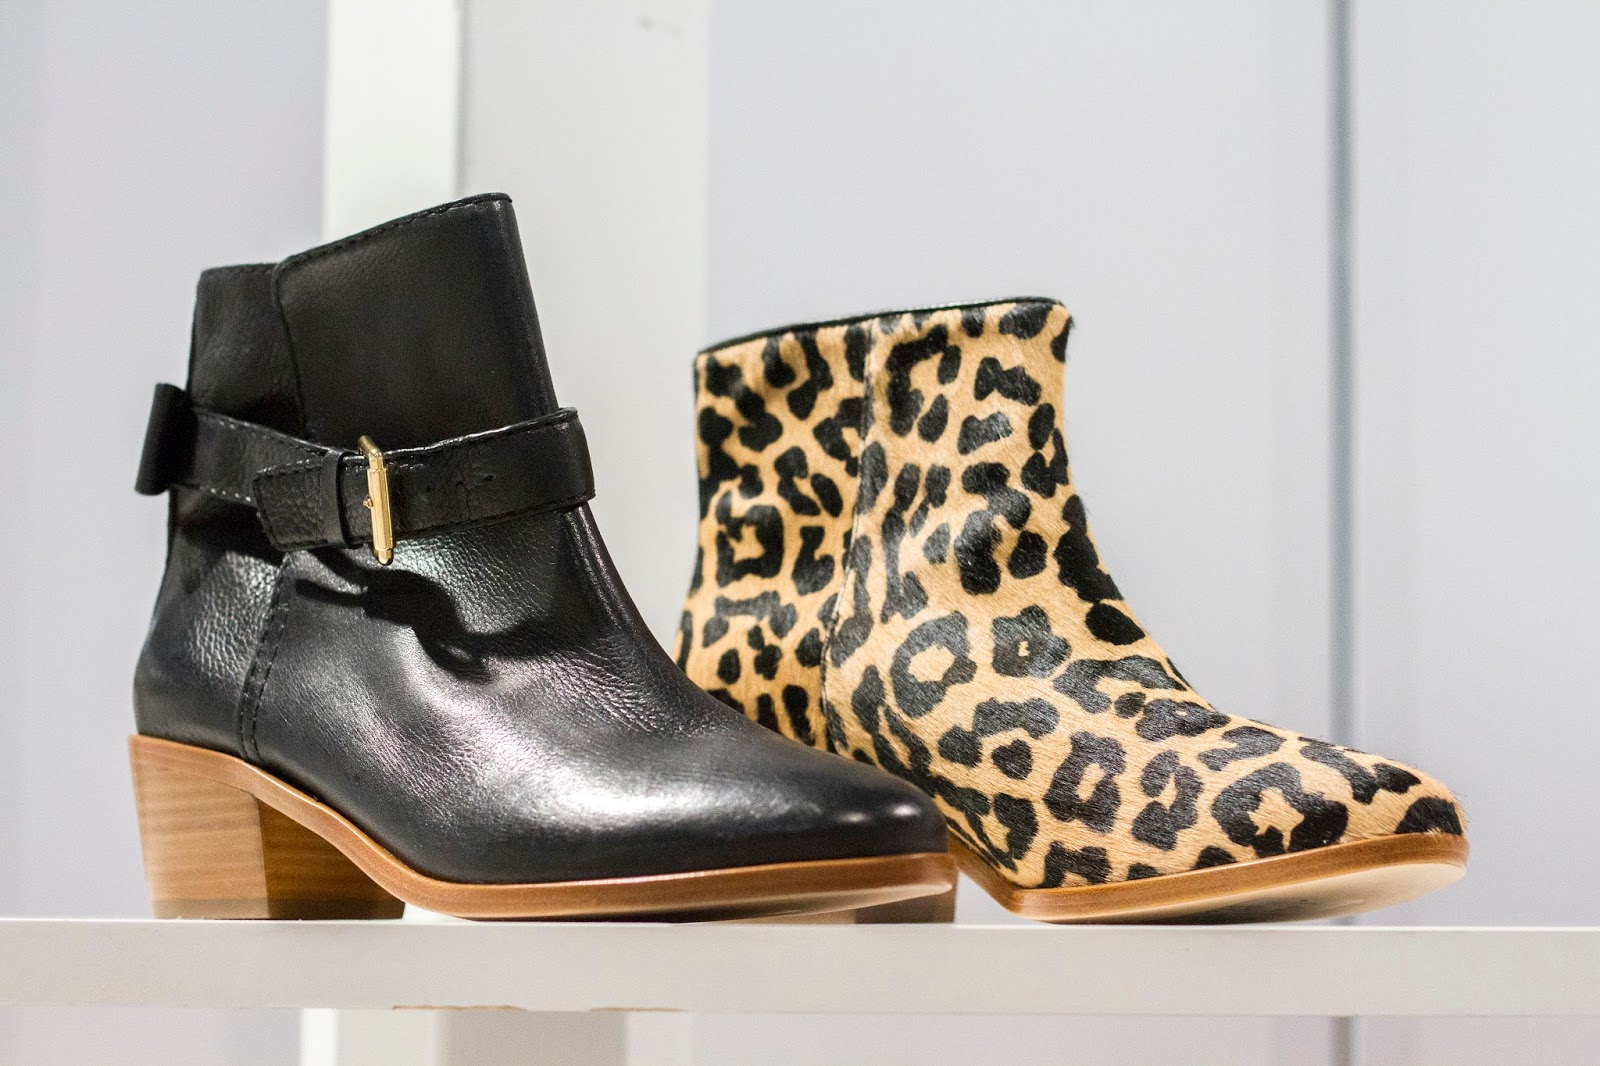 kate spade new york fall 2015 shoe collection fn platform leopard booties